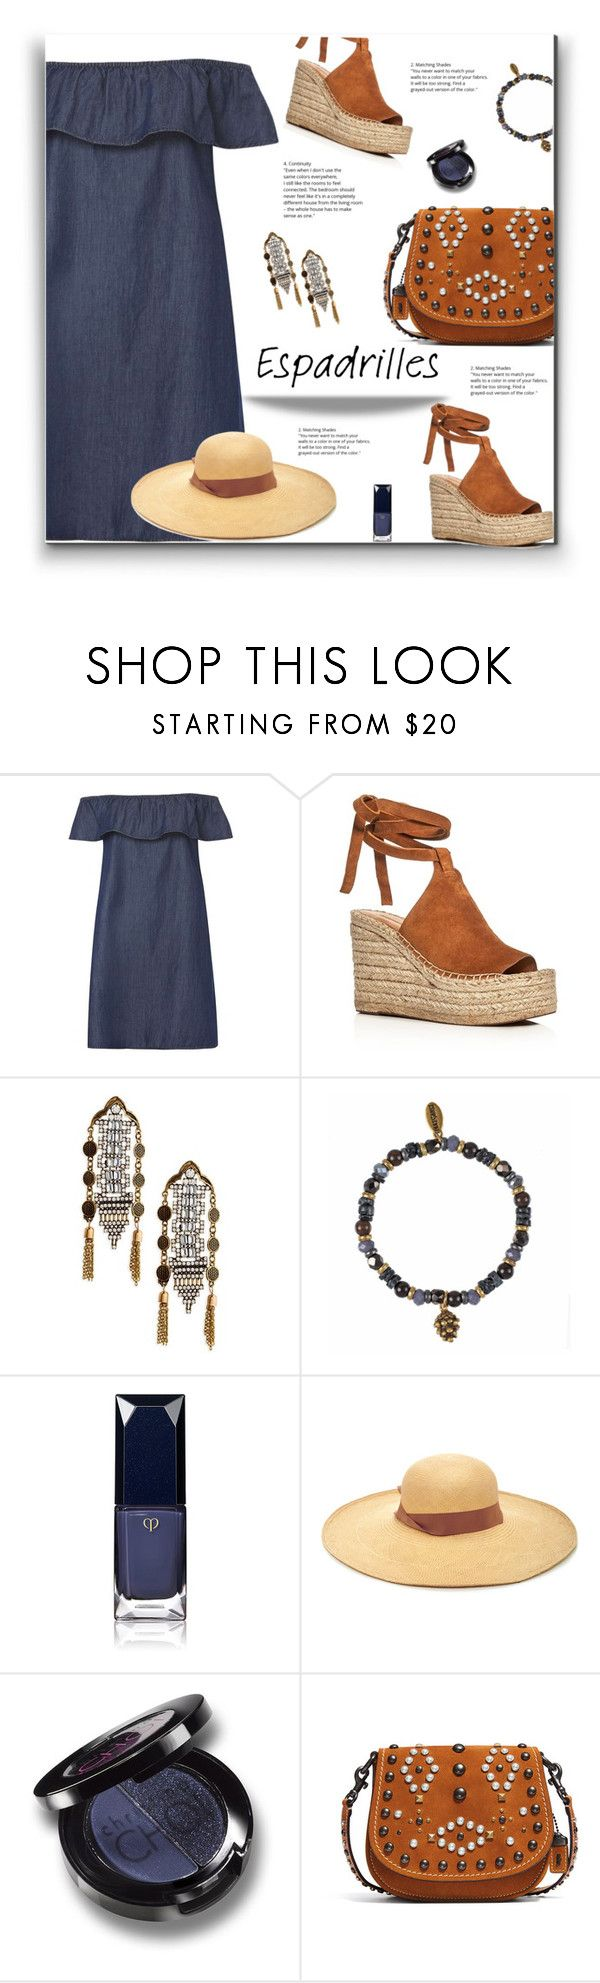 """Step Into Summer"" by yummymummystyle ❤ liked on Polyvore featuring Dorothy Perkins, Sigerson Morrison, Shashi, Hultquist, Clé de Peau Beauté, Sensi Studio, Christina Choi Cosmetics, Coach 1941, chambray and MyStyle"